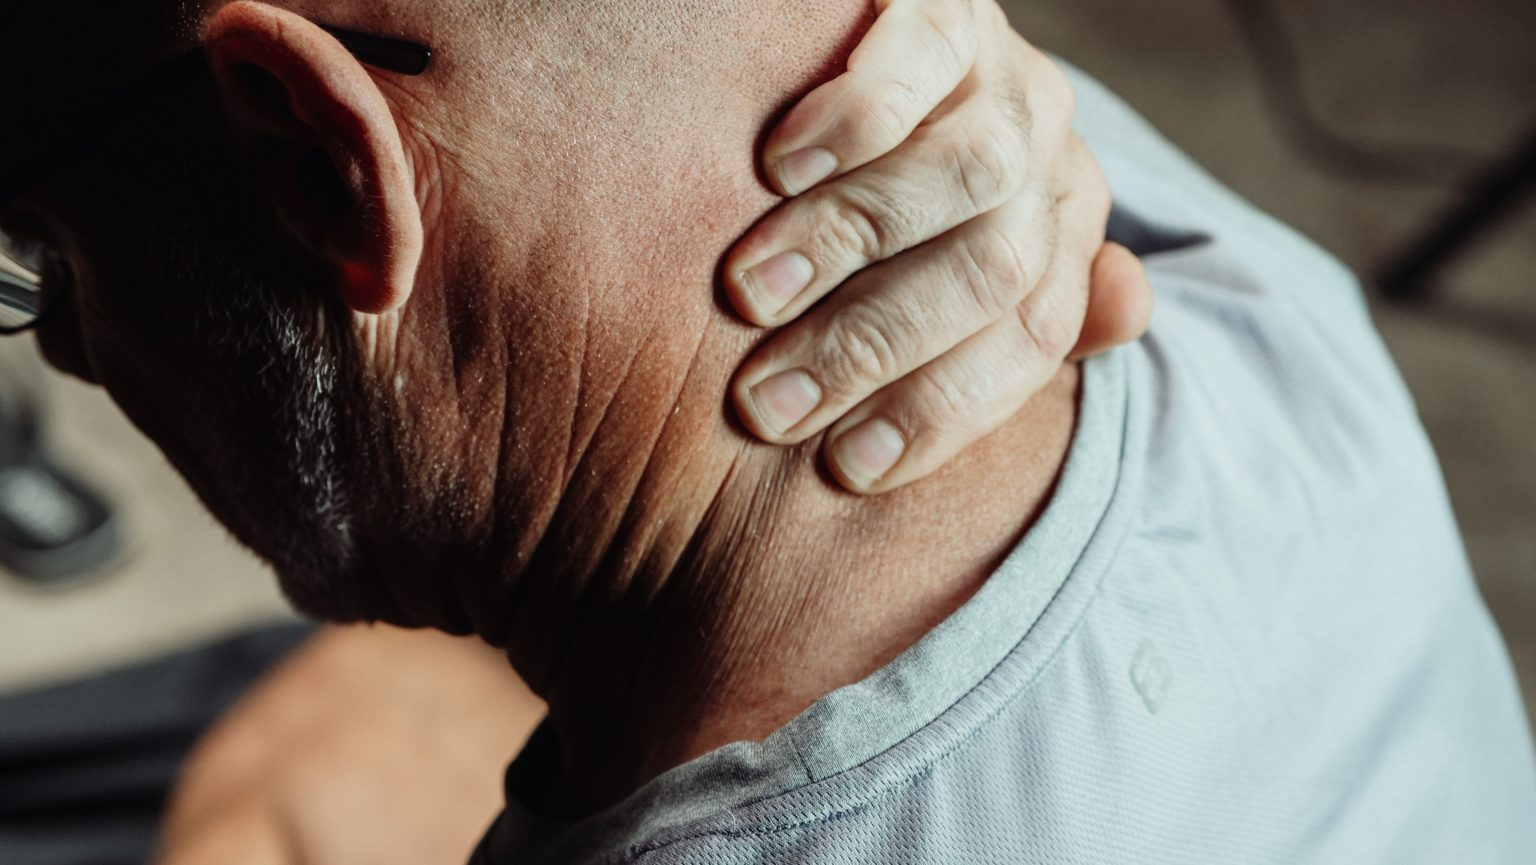 physio can help with neck pain